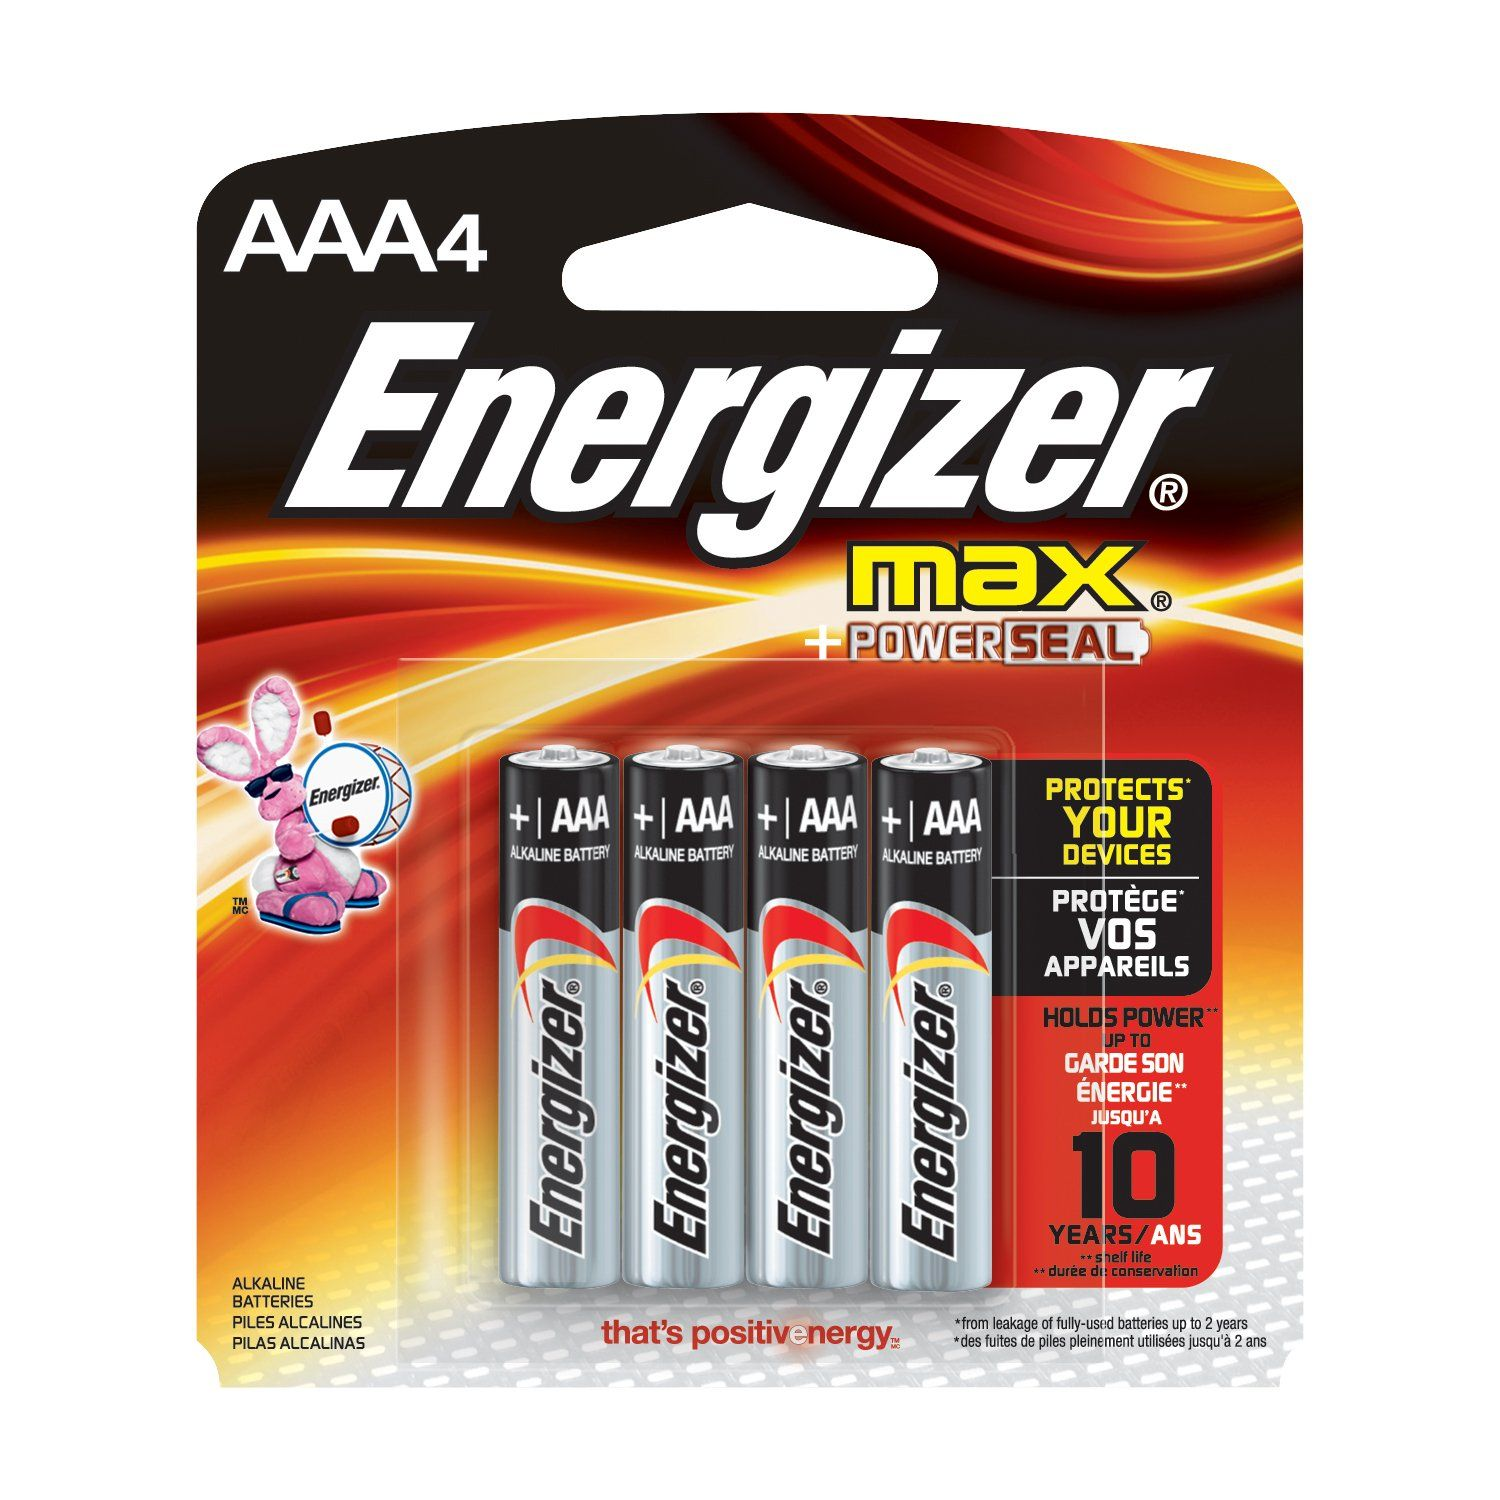 Energizer Max Aaa Batteries Designed To Prevent Damaging Leaks 4 Count Energizer Battery Energizer Batteries